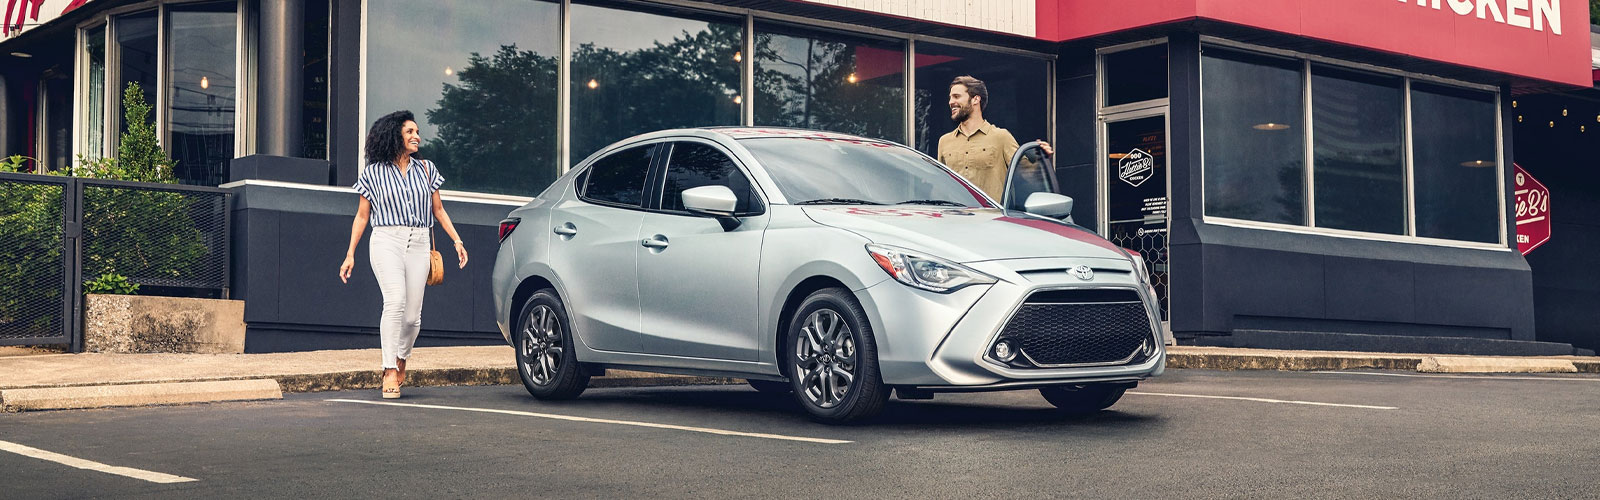 2020 Toyota Yaris Subcompact Cars For Sale In Grenada, Mississippi